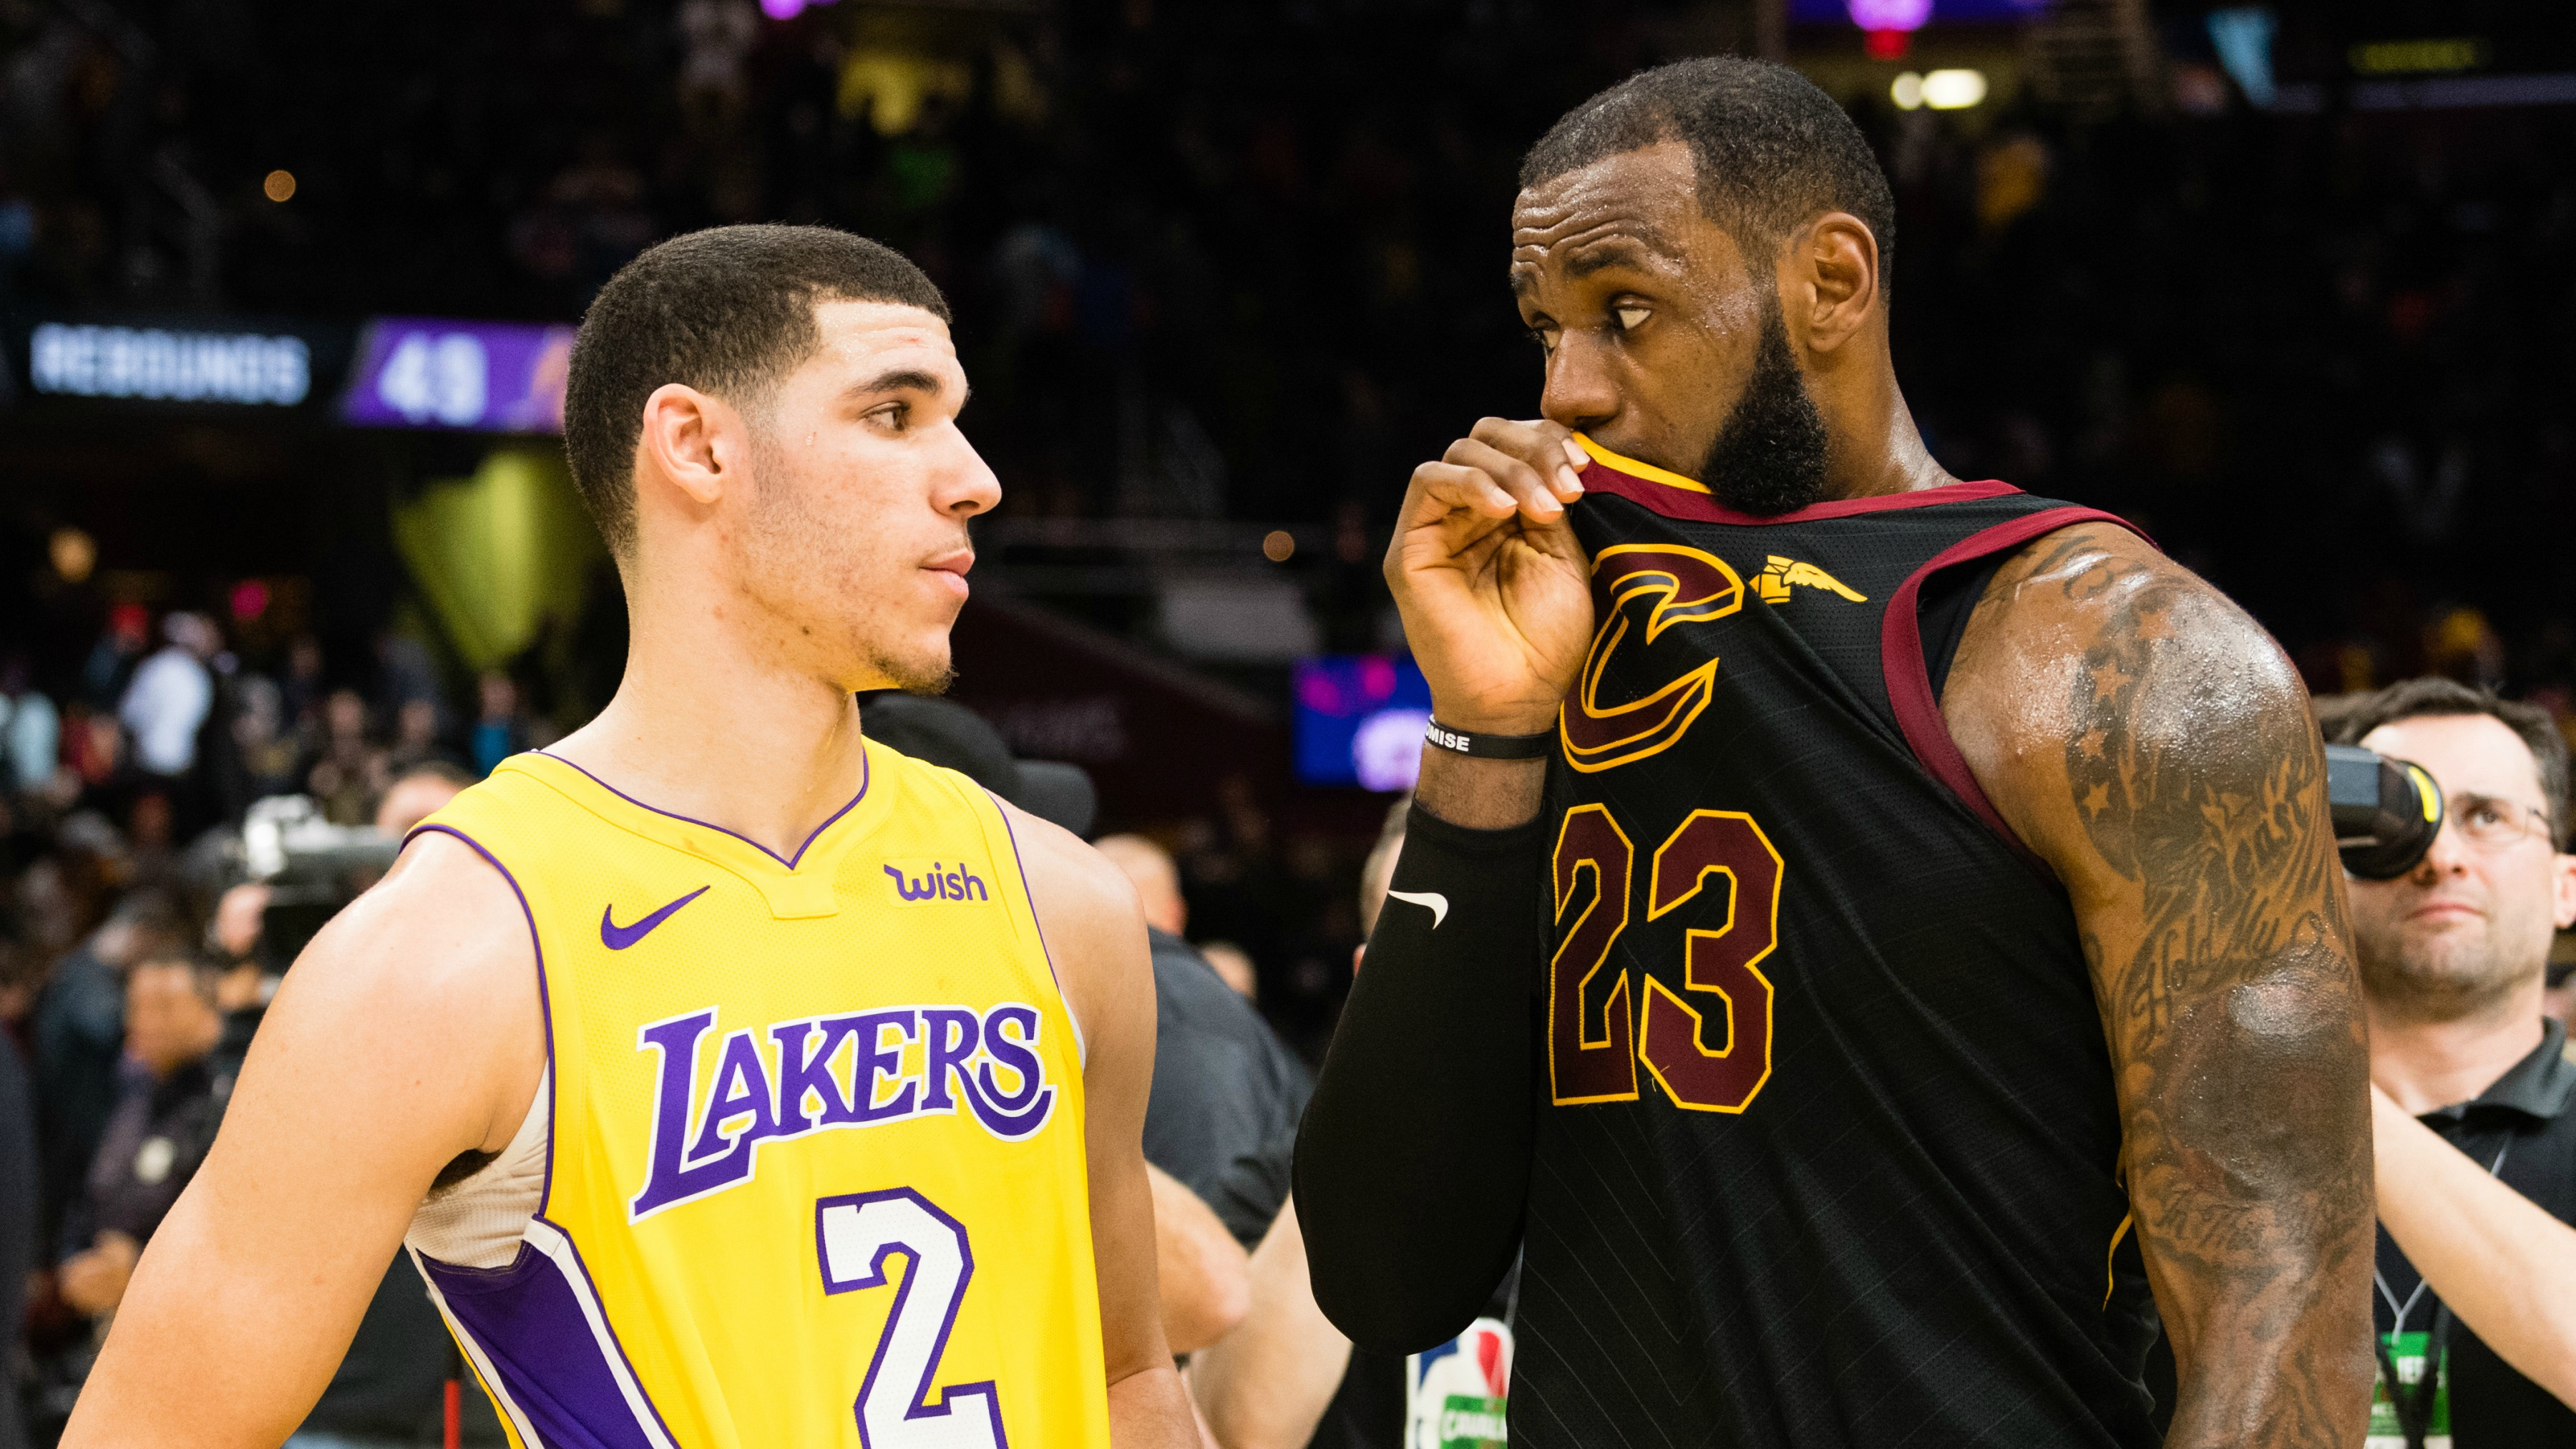 A microphone picked up some of what LeBron James said to Lonzo Ball after last night's Cavs-Lakers game.